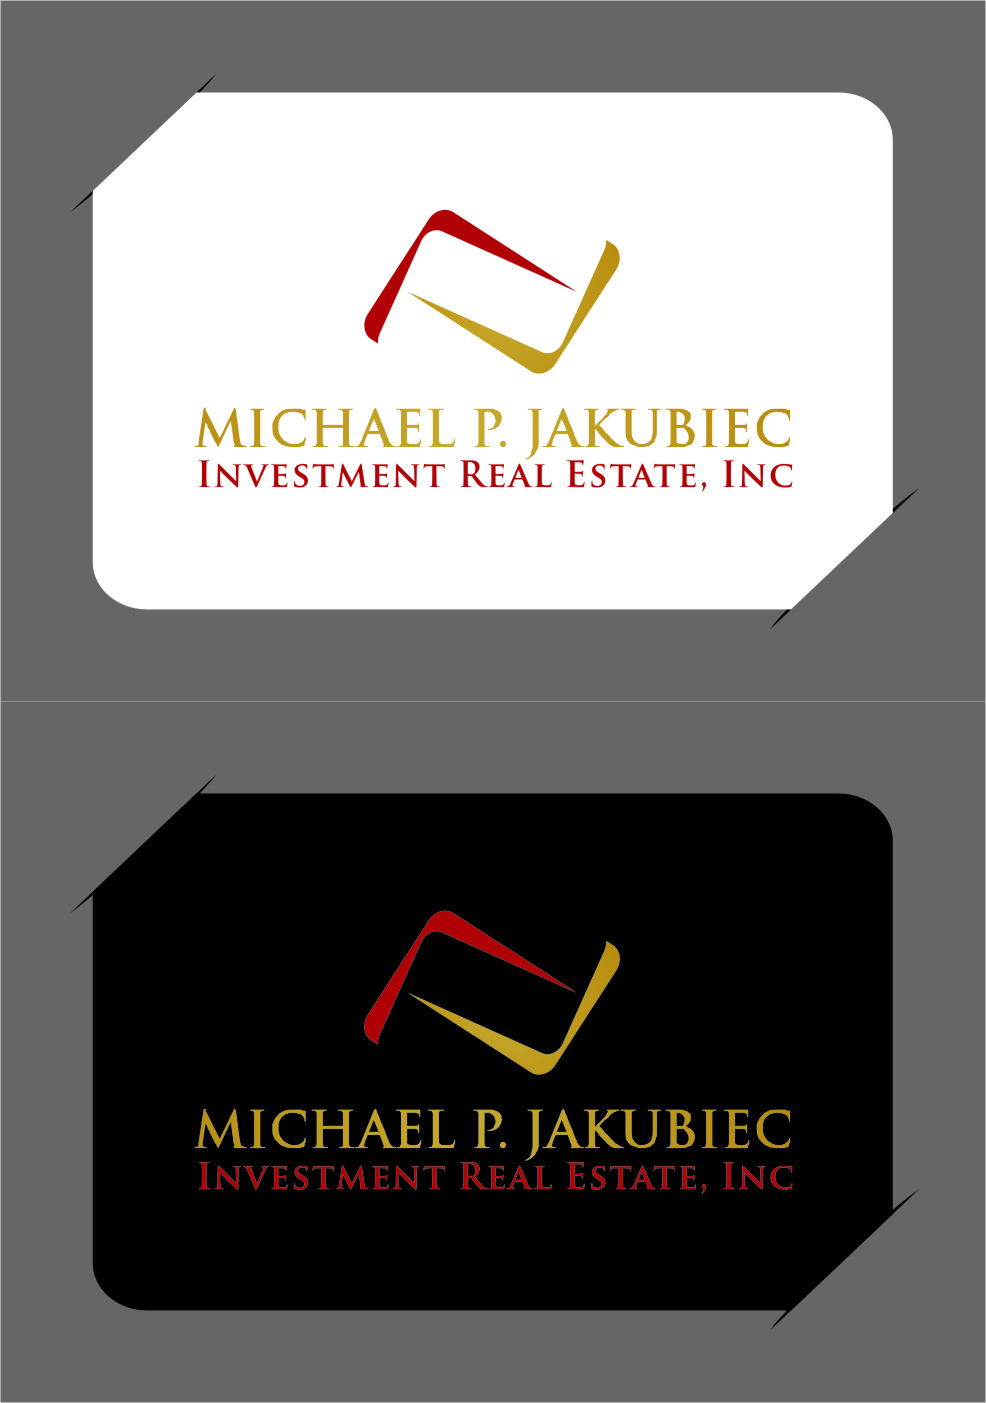 Logo Design by Ngepet_art - Entry No. 128 in the Logo Design Contest New Logo Design for Michael P. Jakubiec Investment Real Estate, Inc..